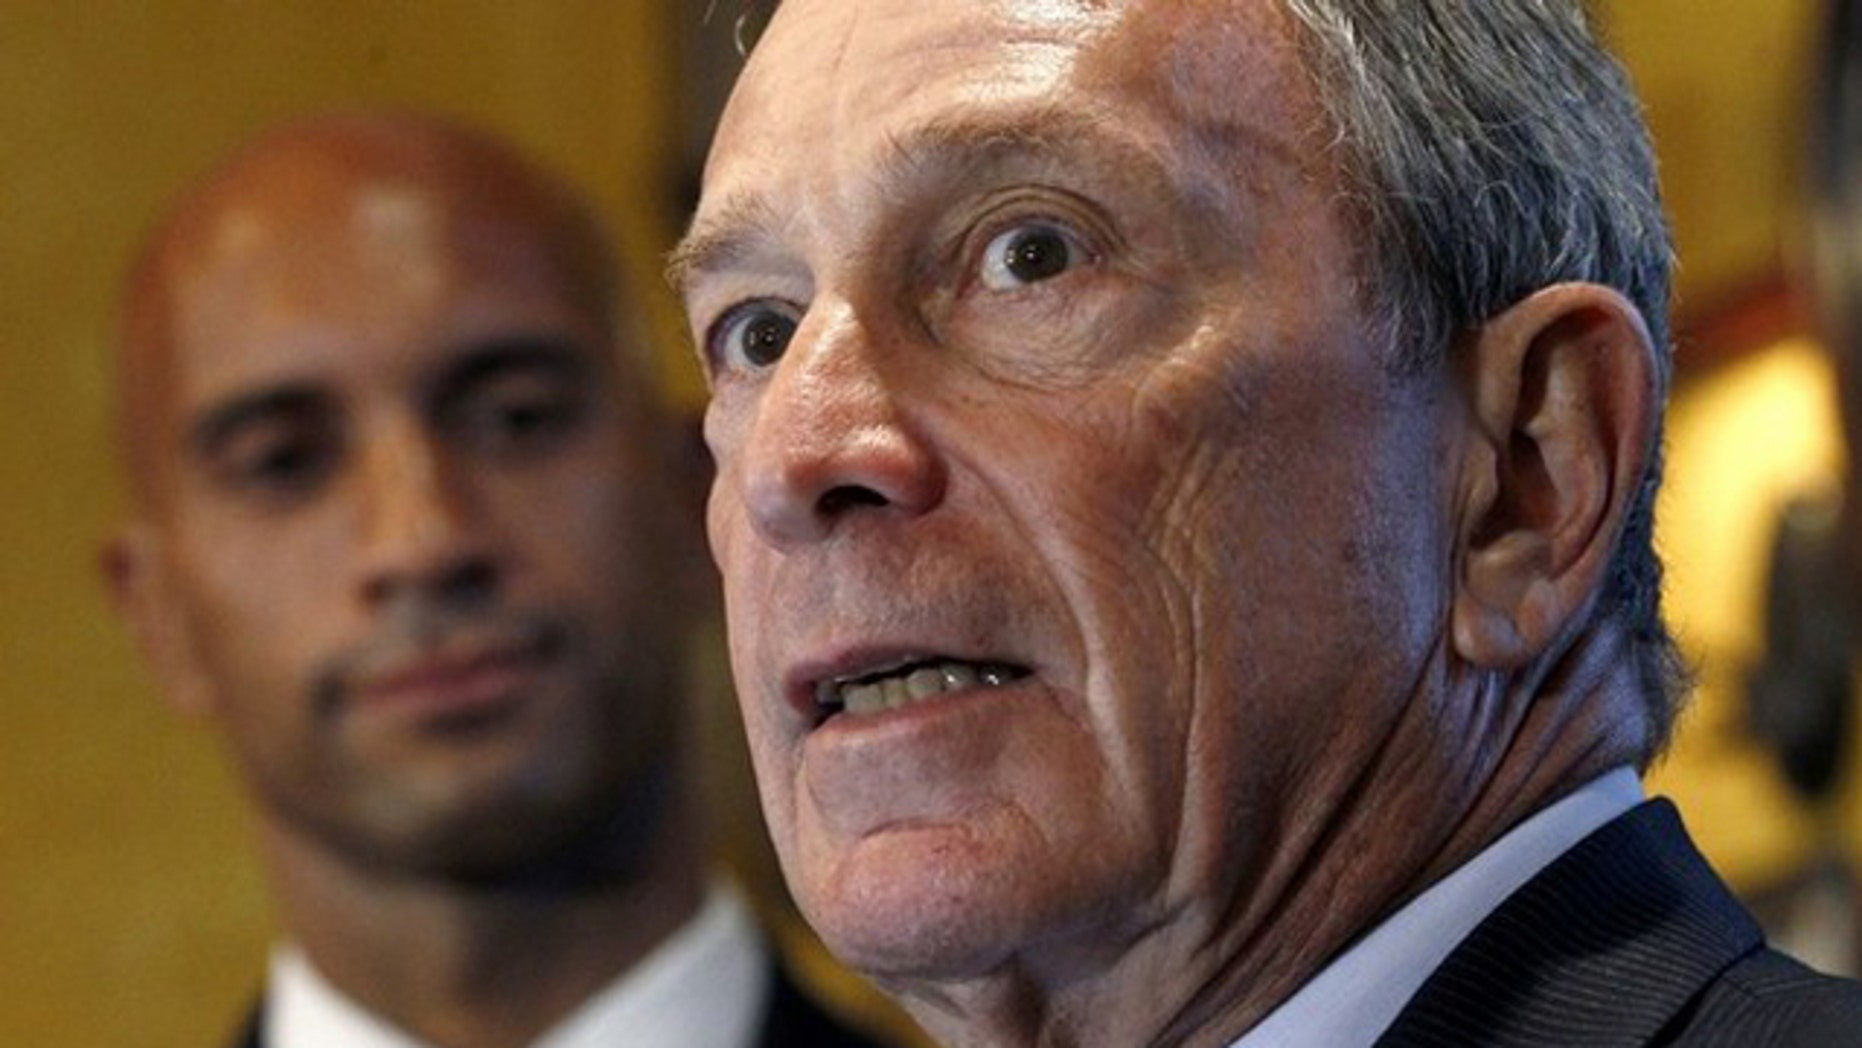 New York City Mayor Michael Bloomberg speaks during his endorsement of Washington D.C. Mayor Adrian Fenty in Washington Aug. 17. (Reuters Photo)